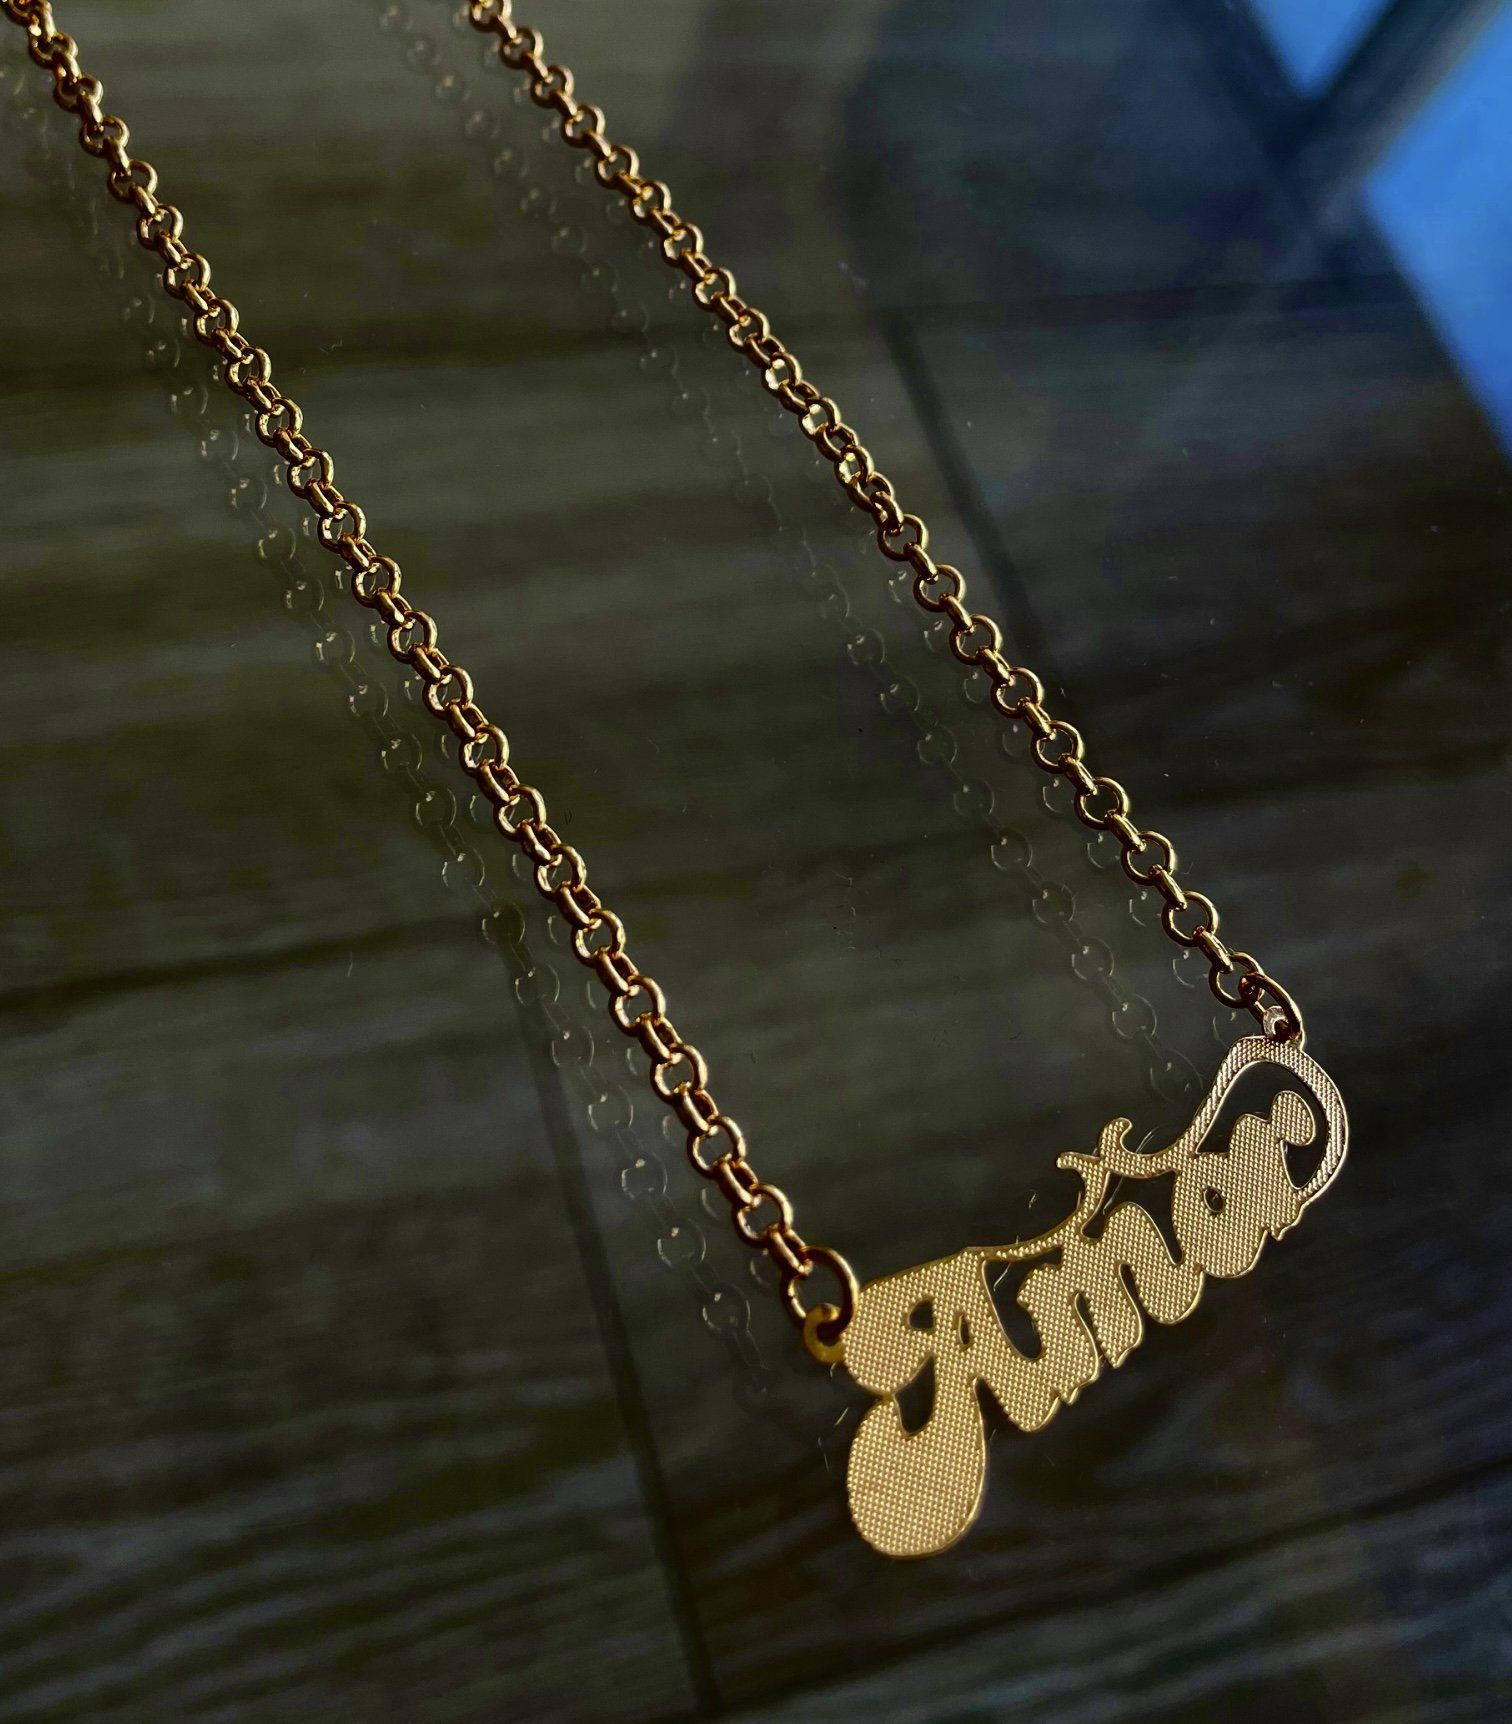 """An ode to a classic while feeling the love in this Amor Nameplate necklace! Amor - the Spanish word for Love, get all in your feelings with this cute golden tone, polished finish necklace. The perfect base for any Iridescent NYC layered look. Gold layered nameplate necklace. Thick round link chain, 17"""" long 1.75"""" plate"""